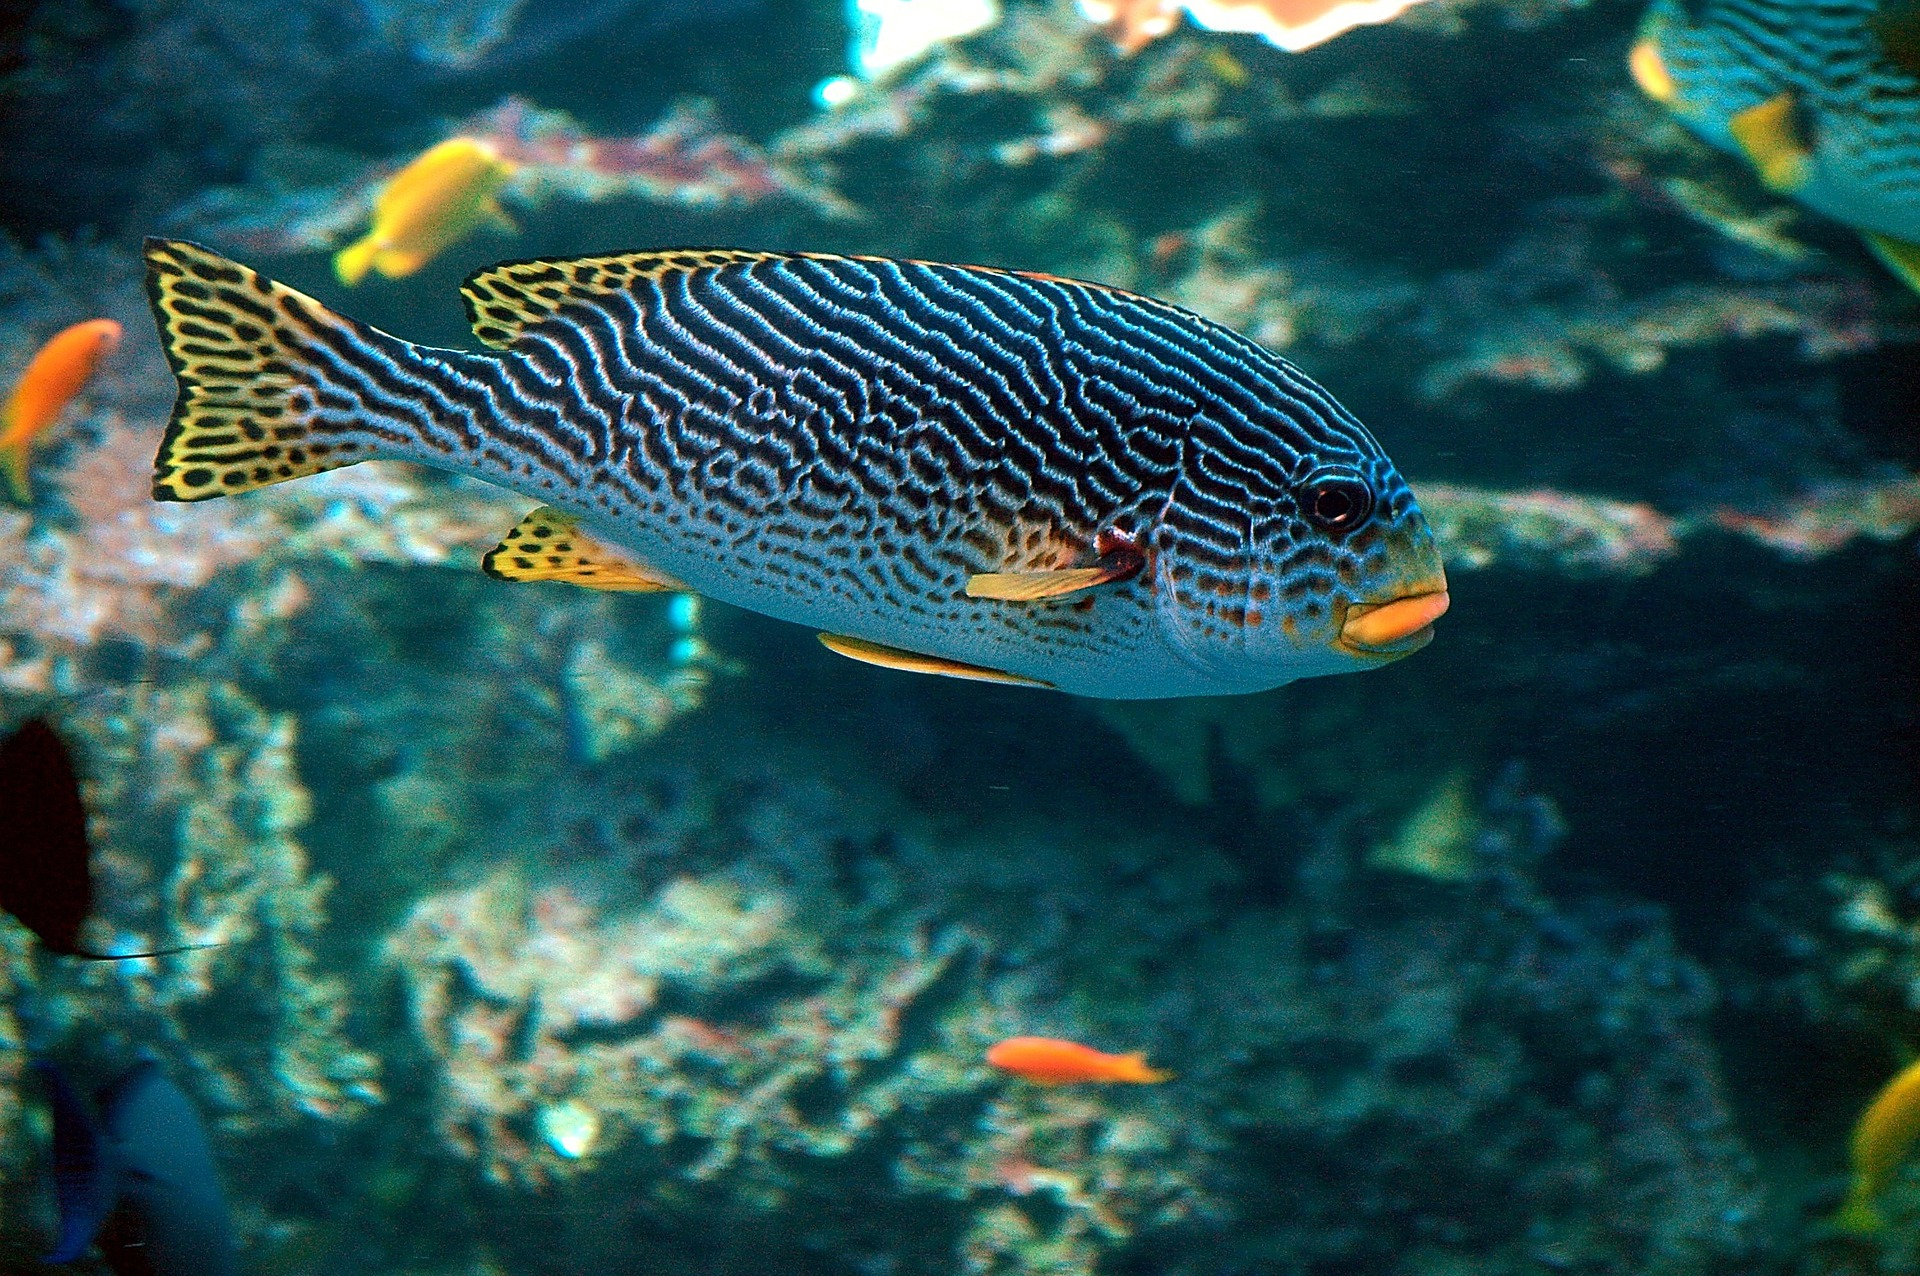 The calming effects of aquariums are more substantial when the fish are colorful and plentiful. This image features a tropical fish with several other species of in the background.